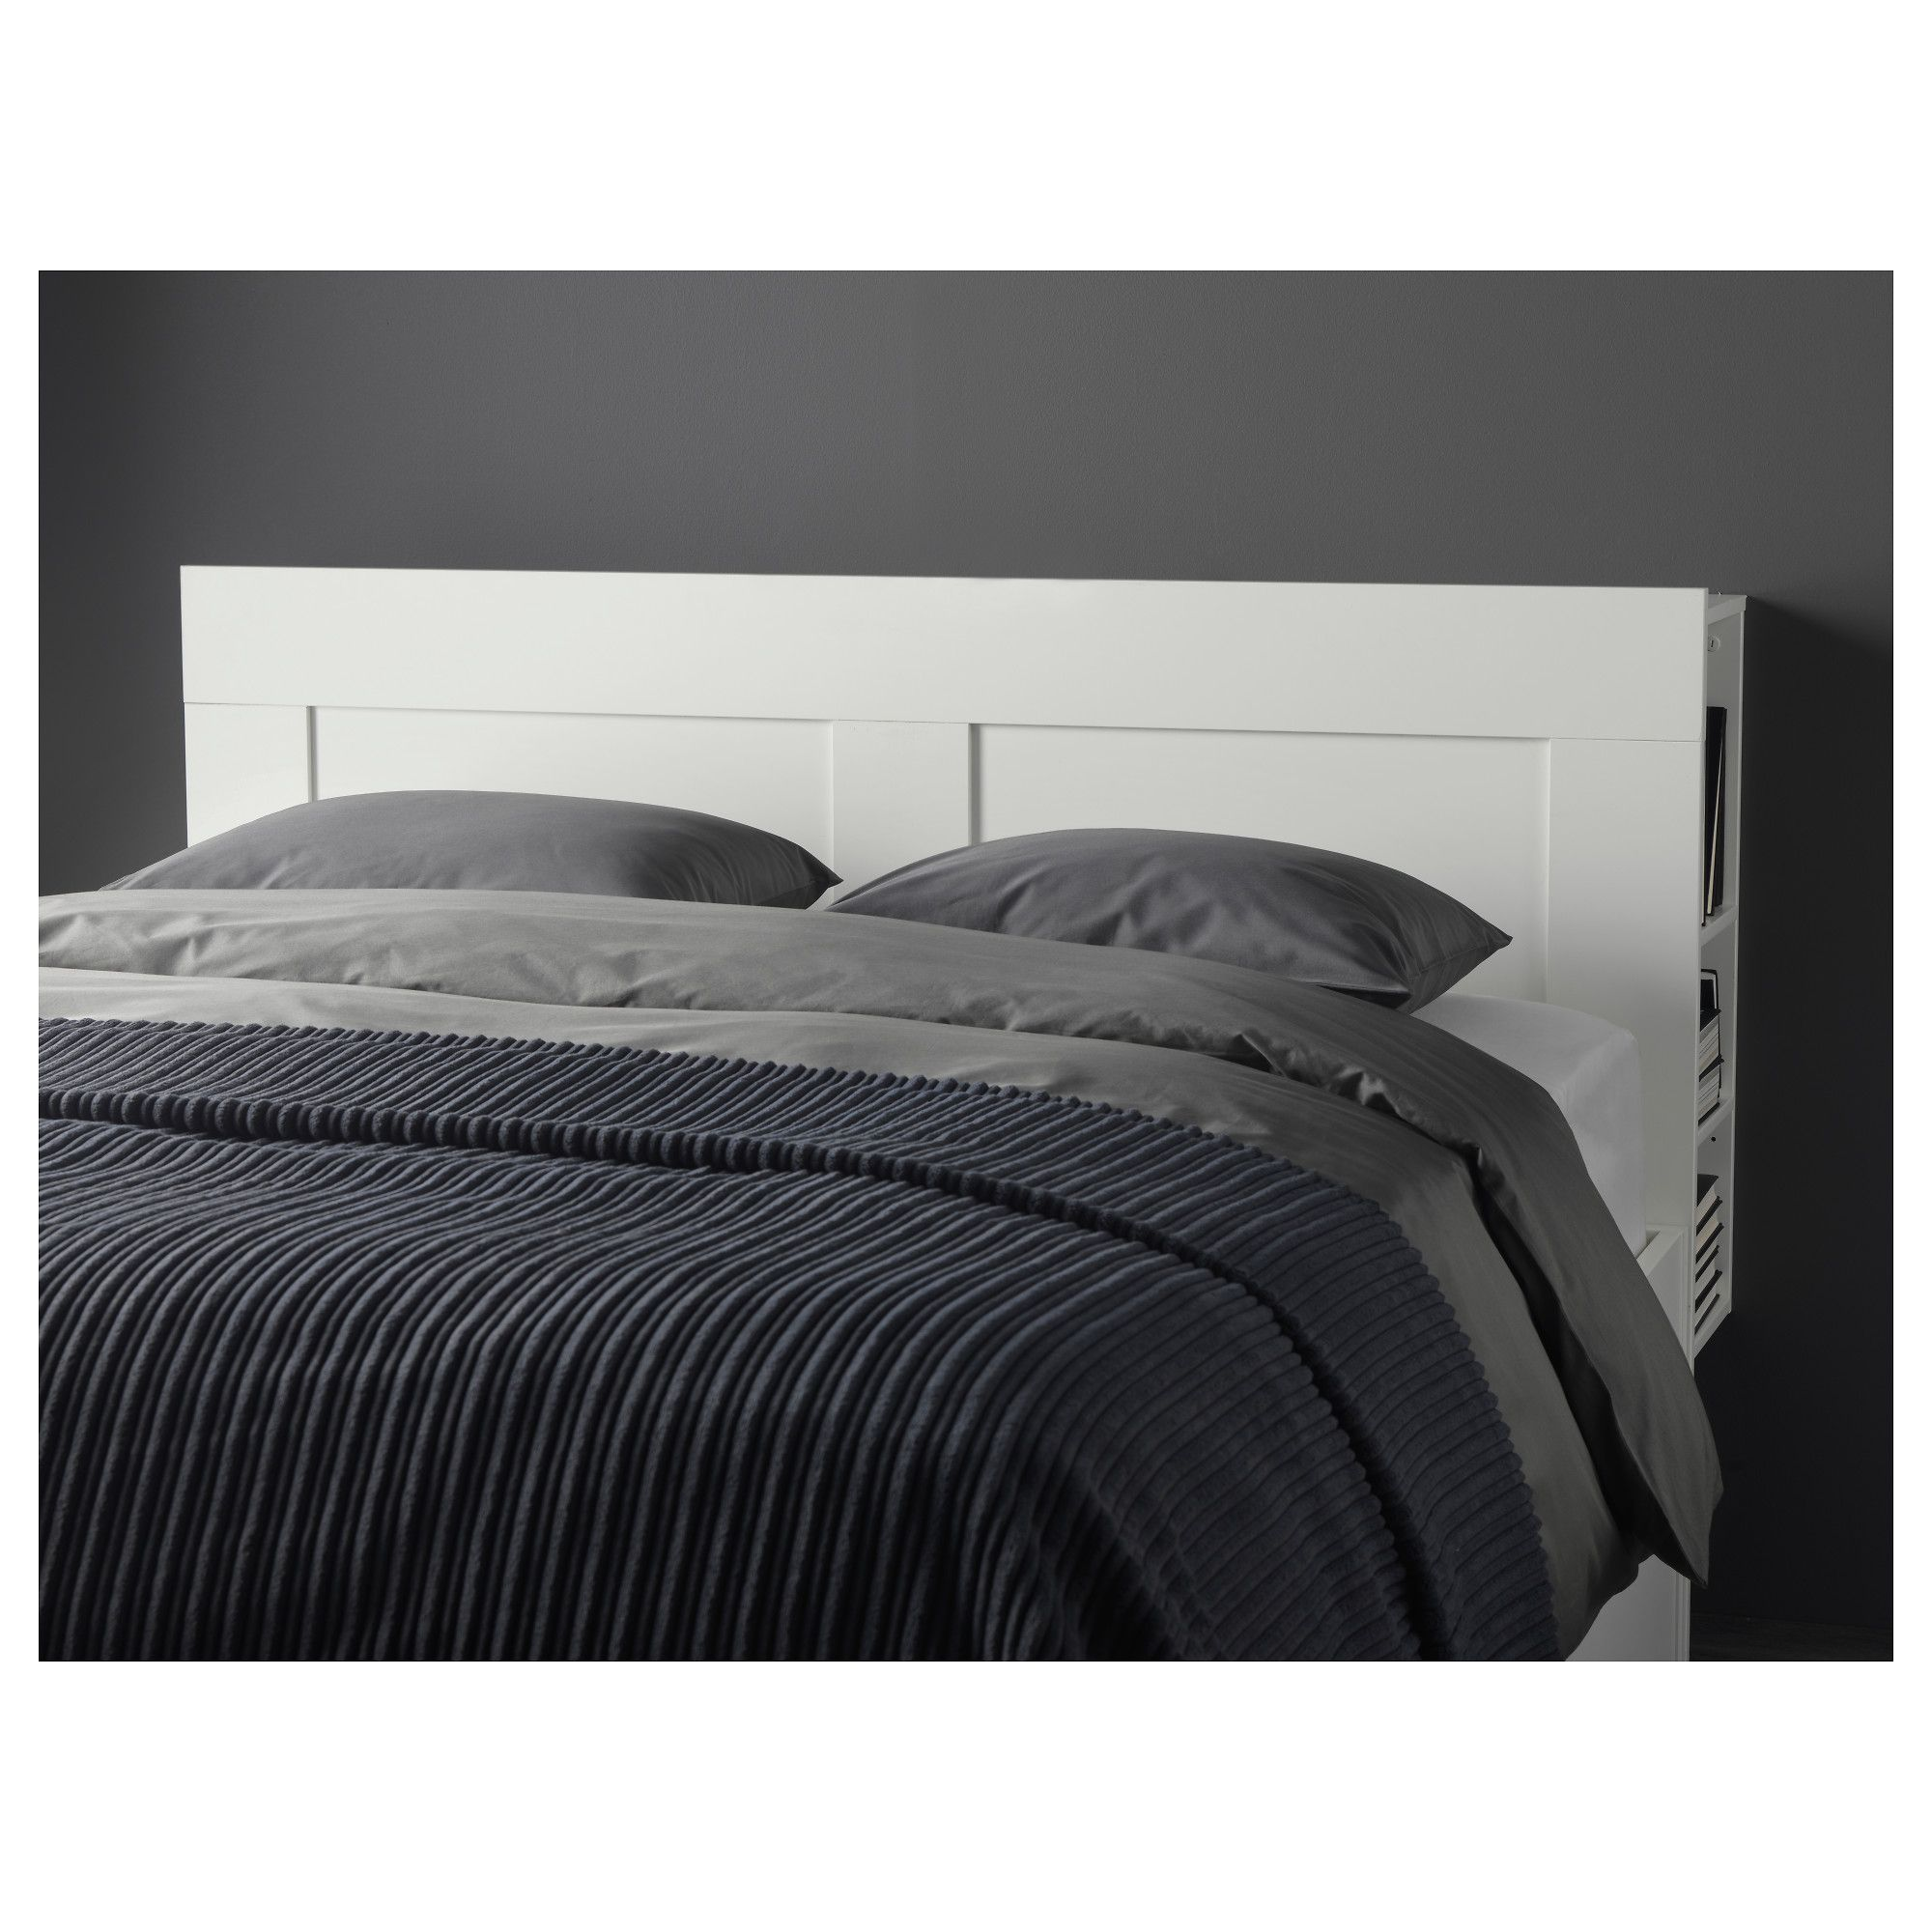 IKEA BRIMNES Headboard with storage compartment white